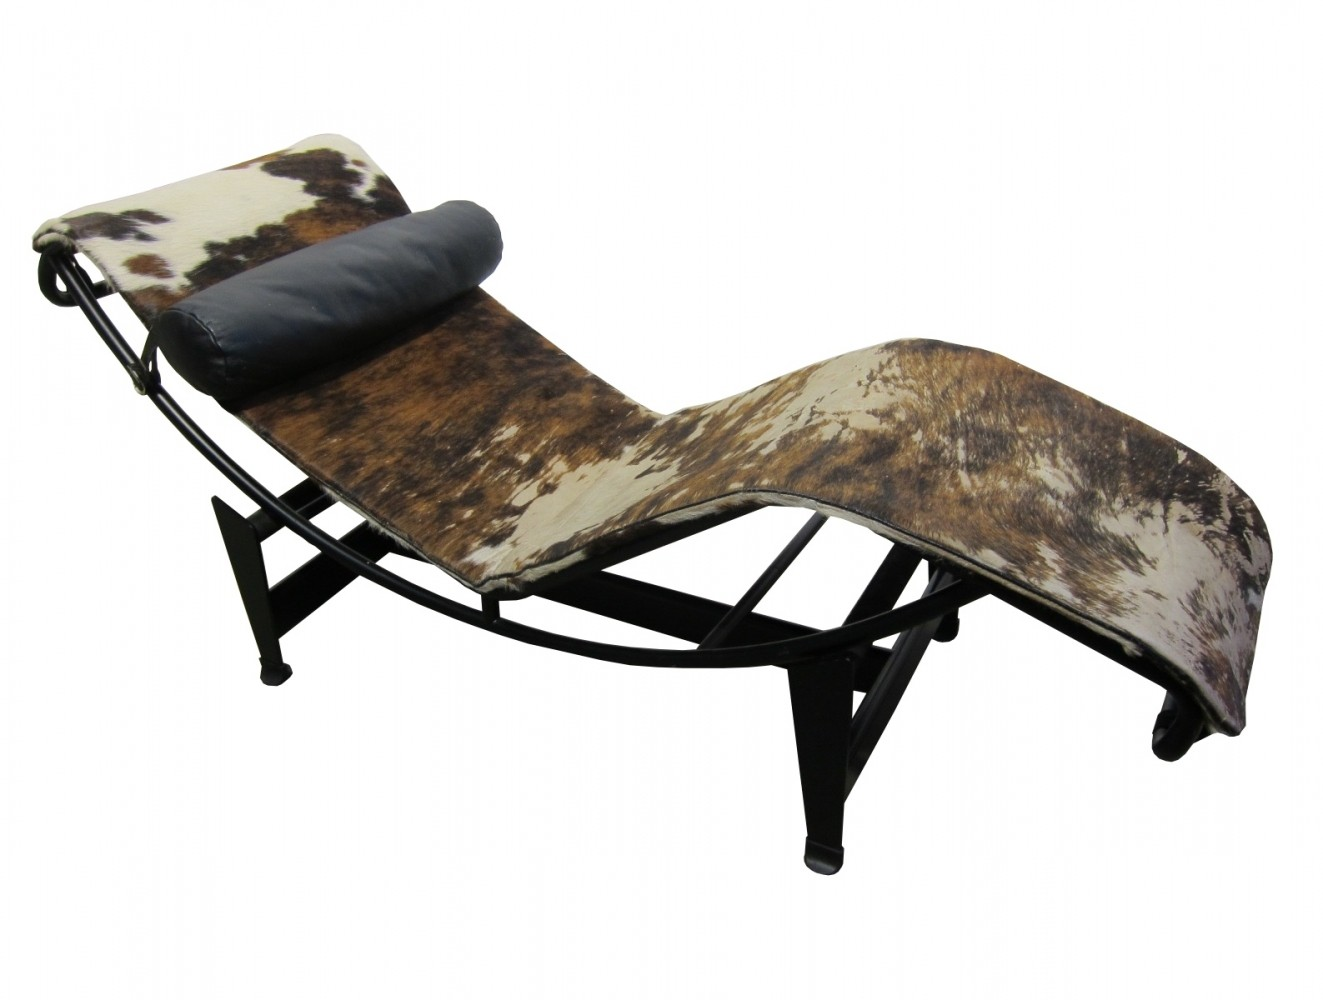 Vintage lc4 39 chaise longue 39 in cowhide by le corbusier for for Chaise longue le corbusier cassina